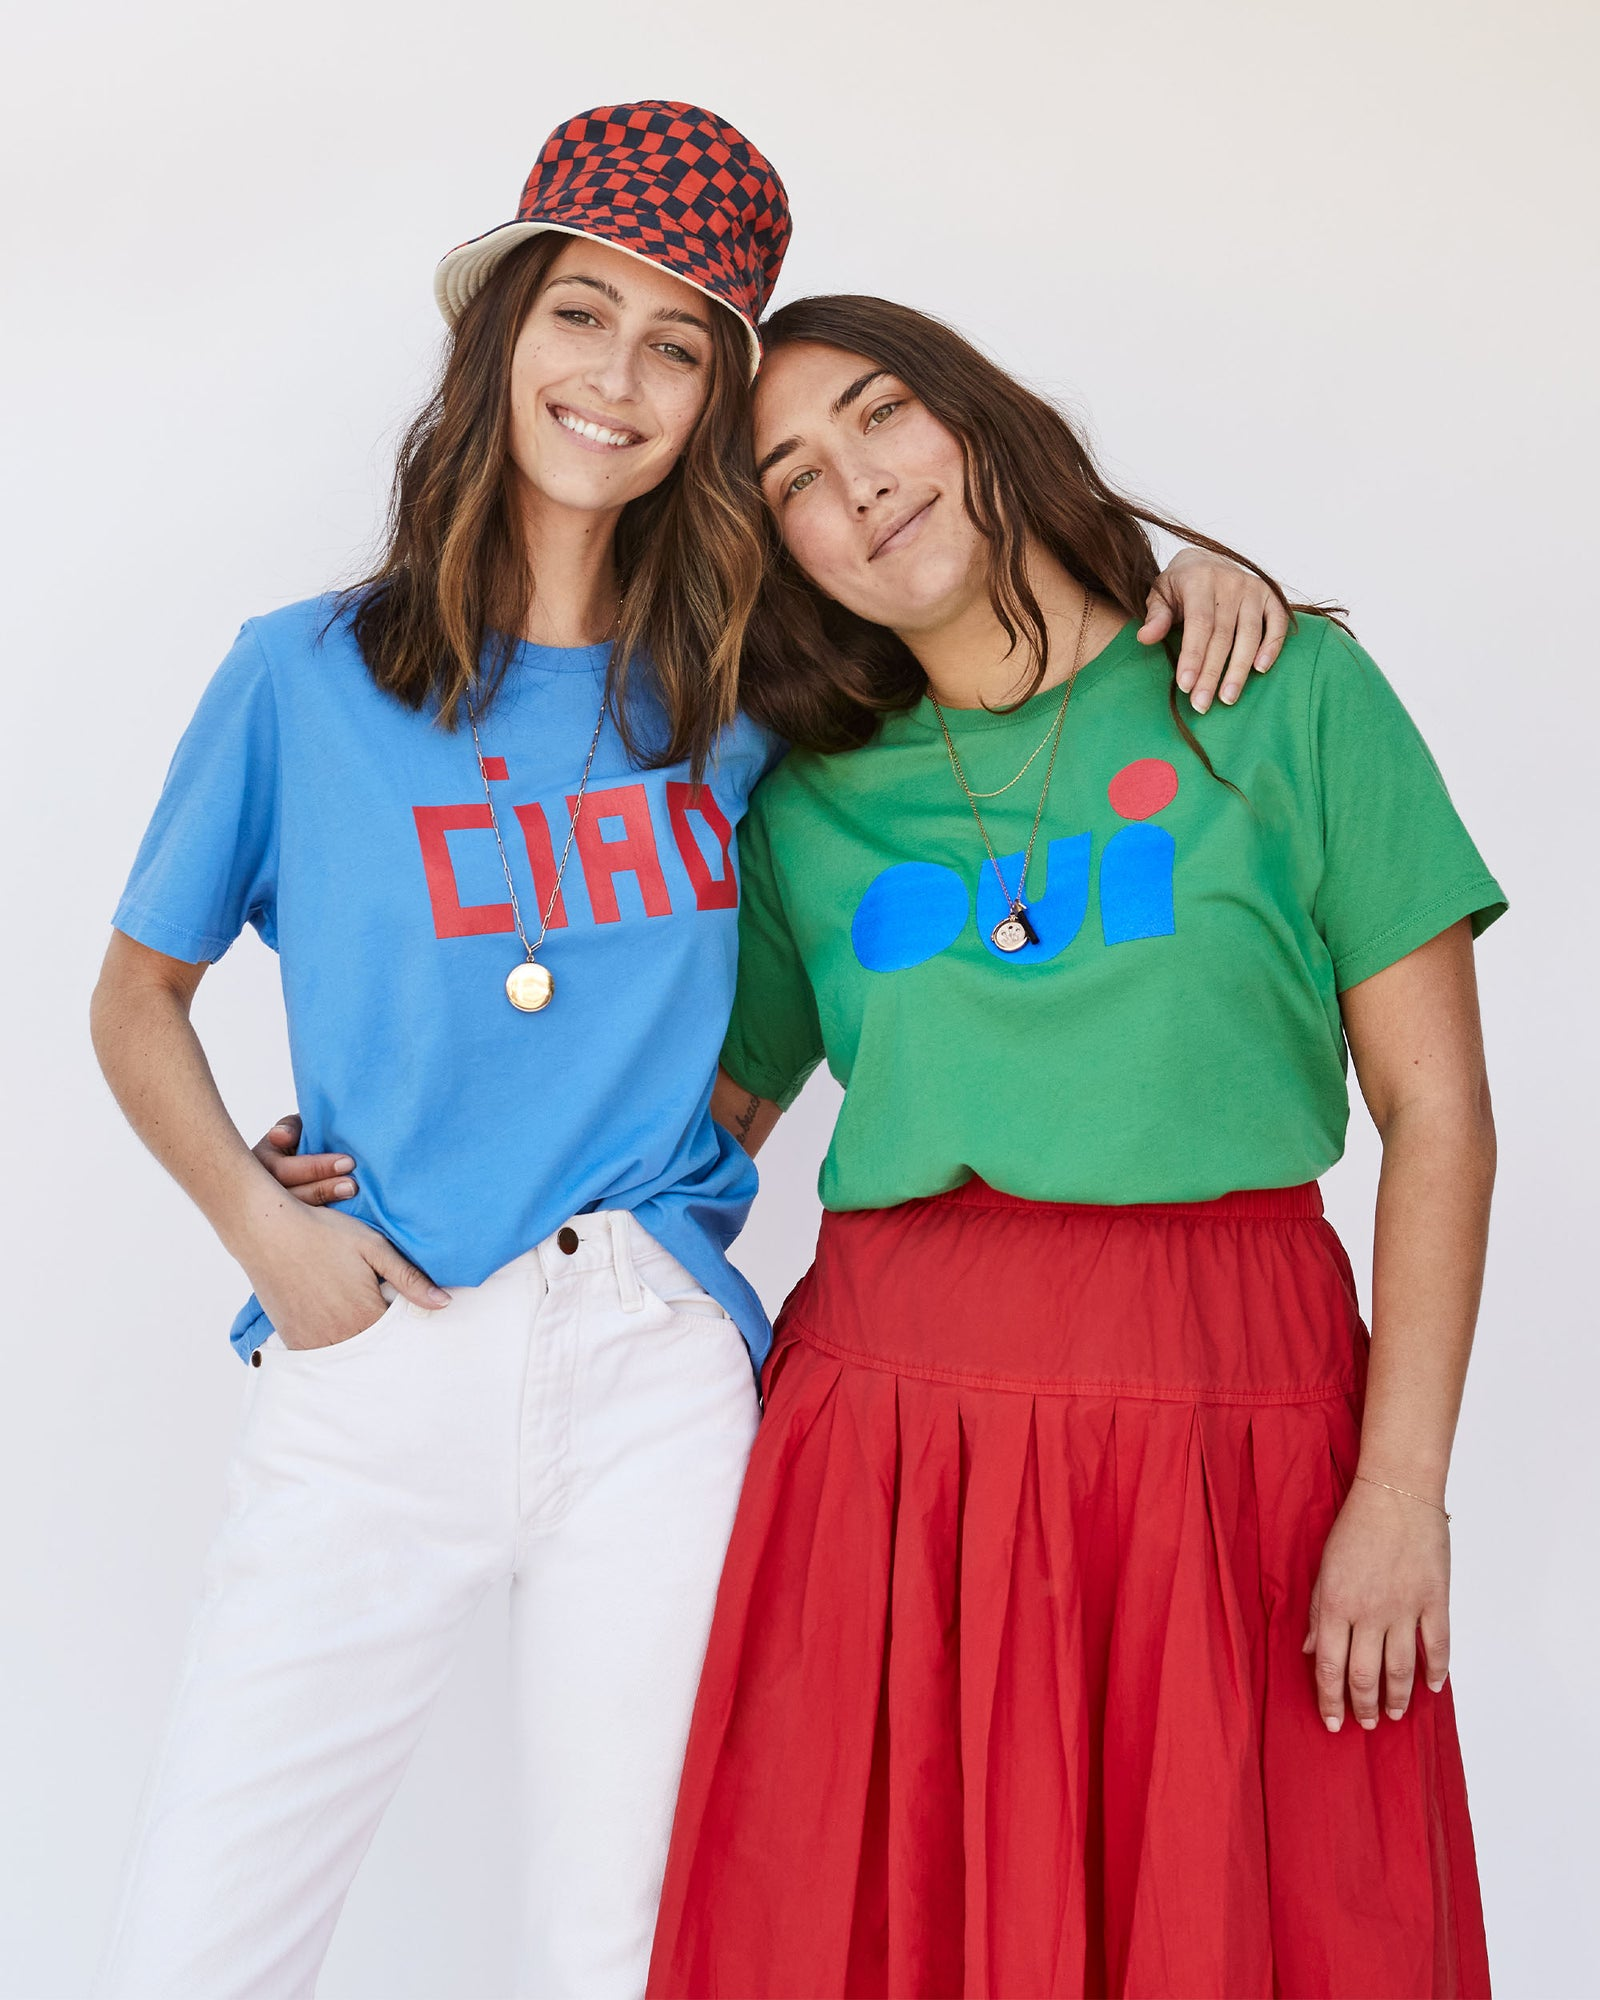 Franny wearing our Camp Fit Blue Ciao Tee and Abbi wearing our Original Fit Green Oui Tee